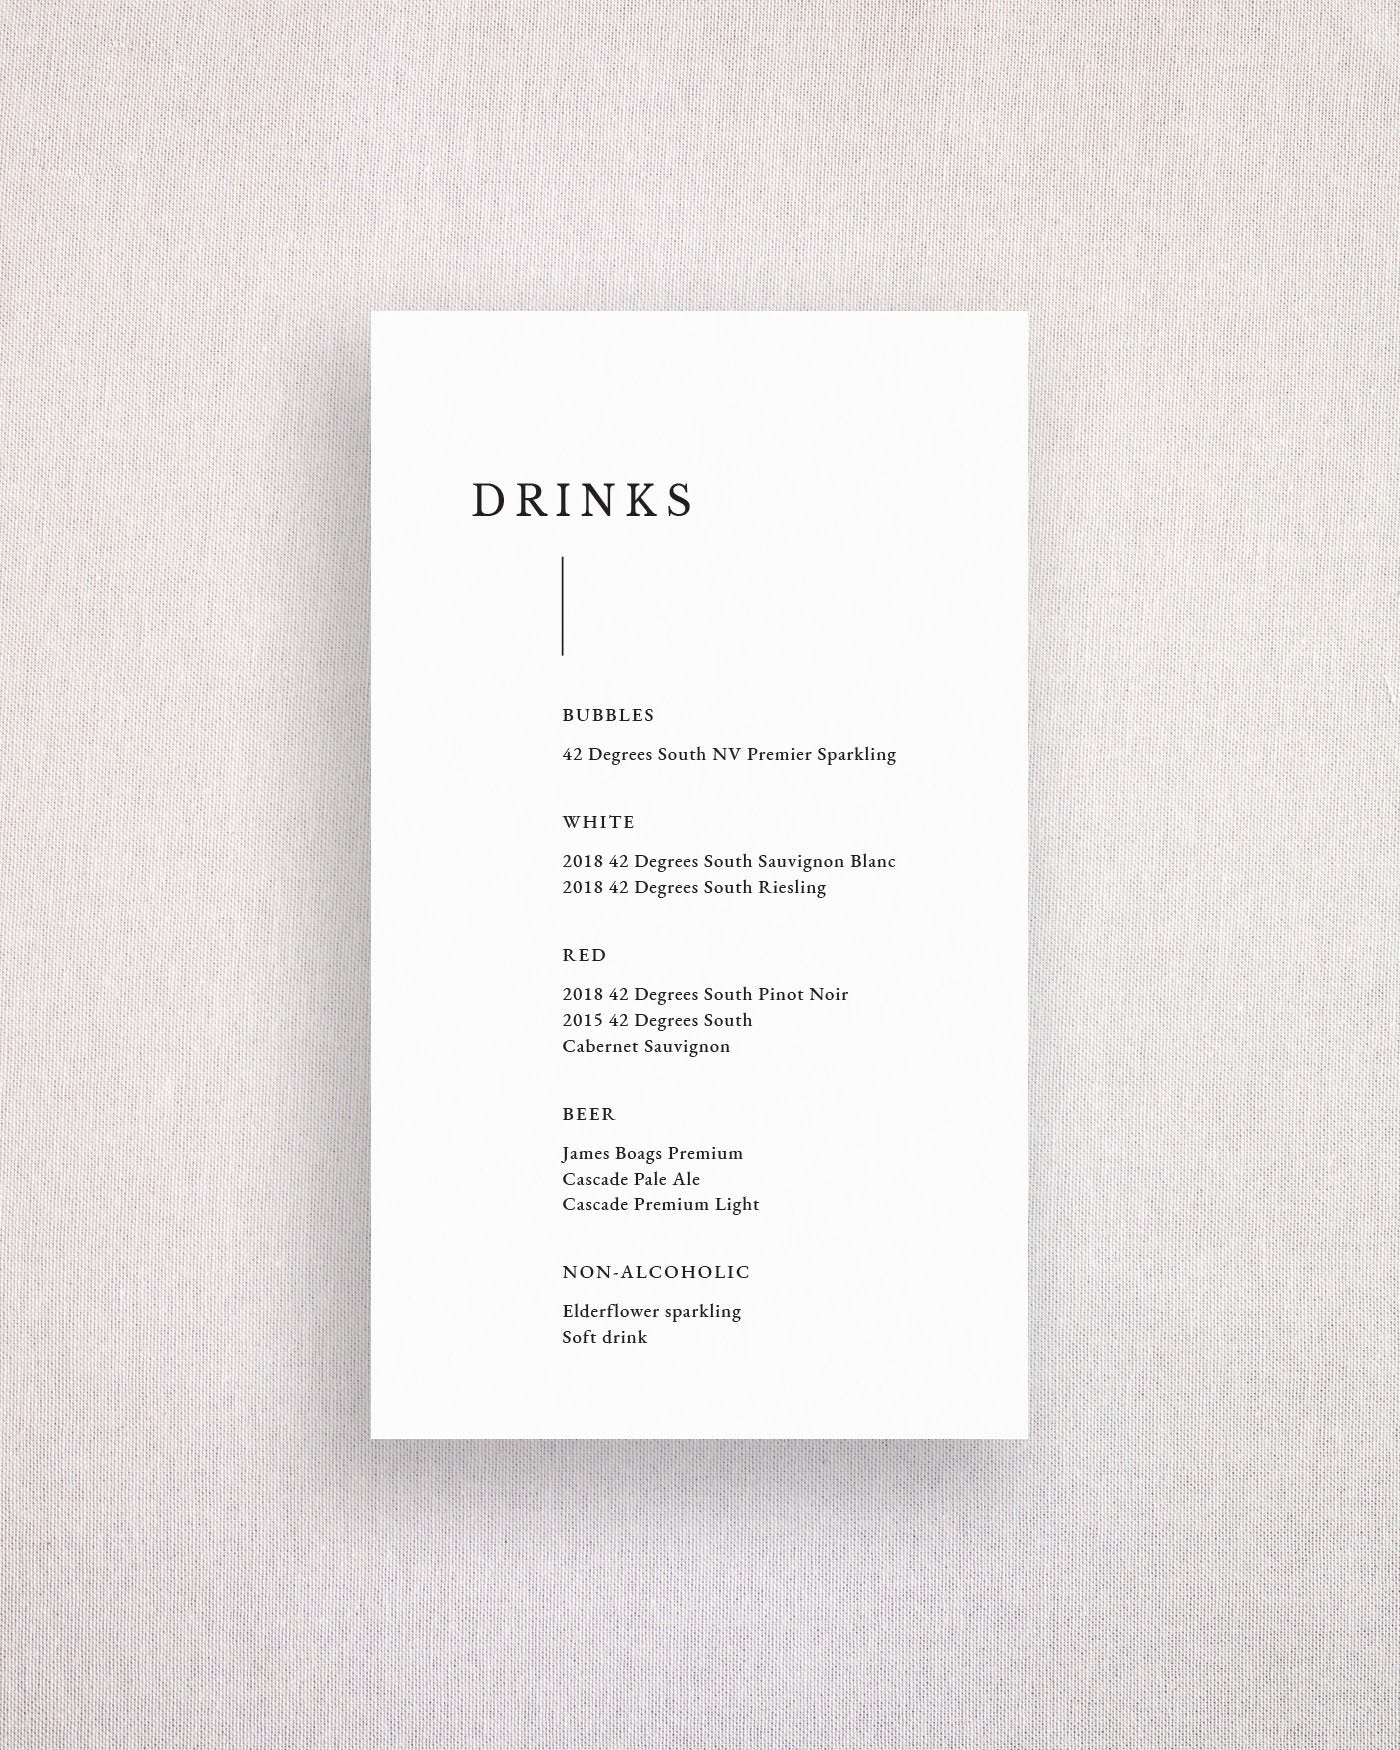 Milan Drinks Menu